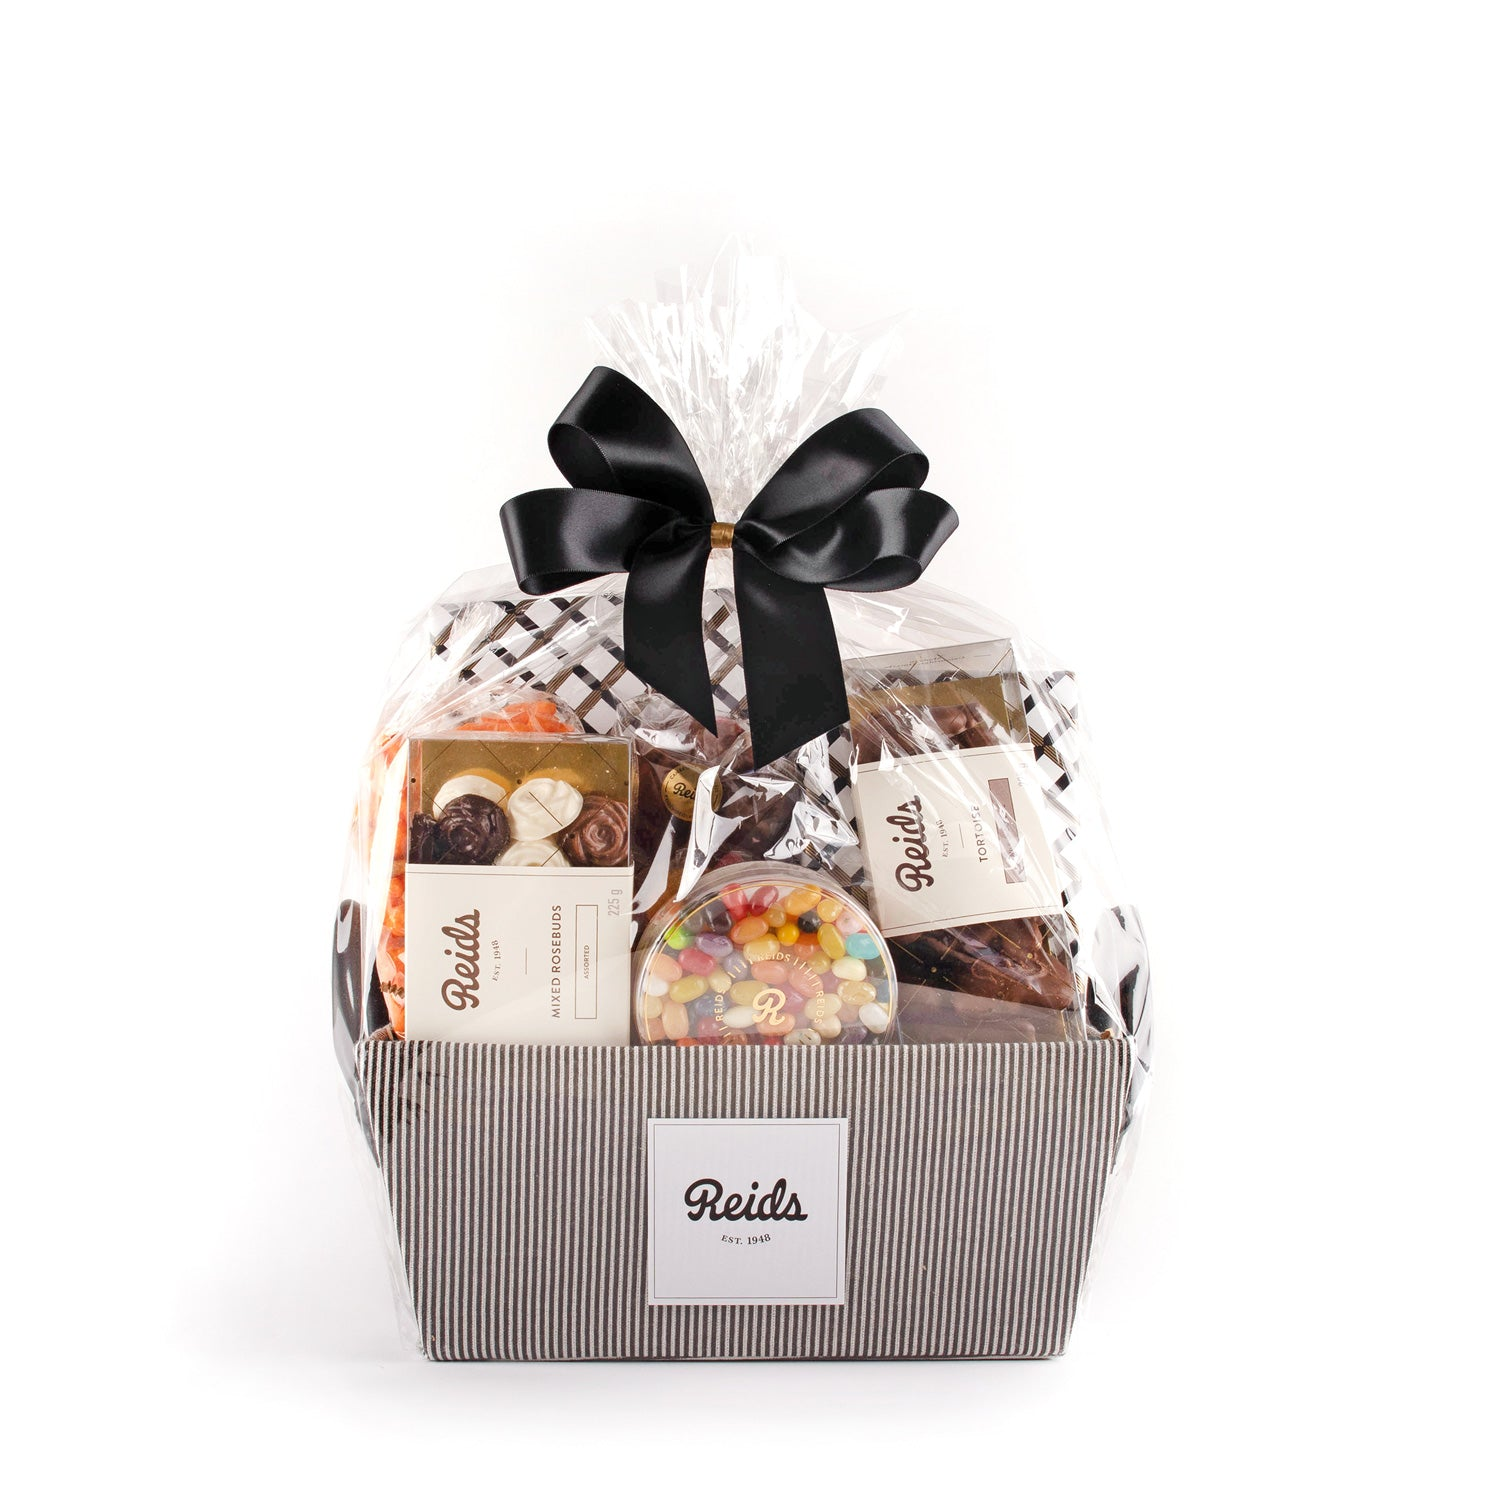 The medium basket comes in a black and white pinstriped basket wrapped in cellophane and tied with a bow